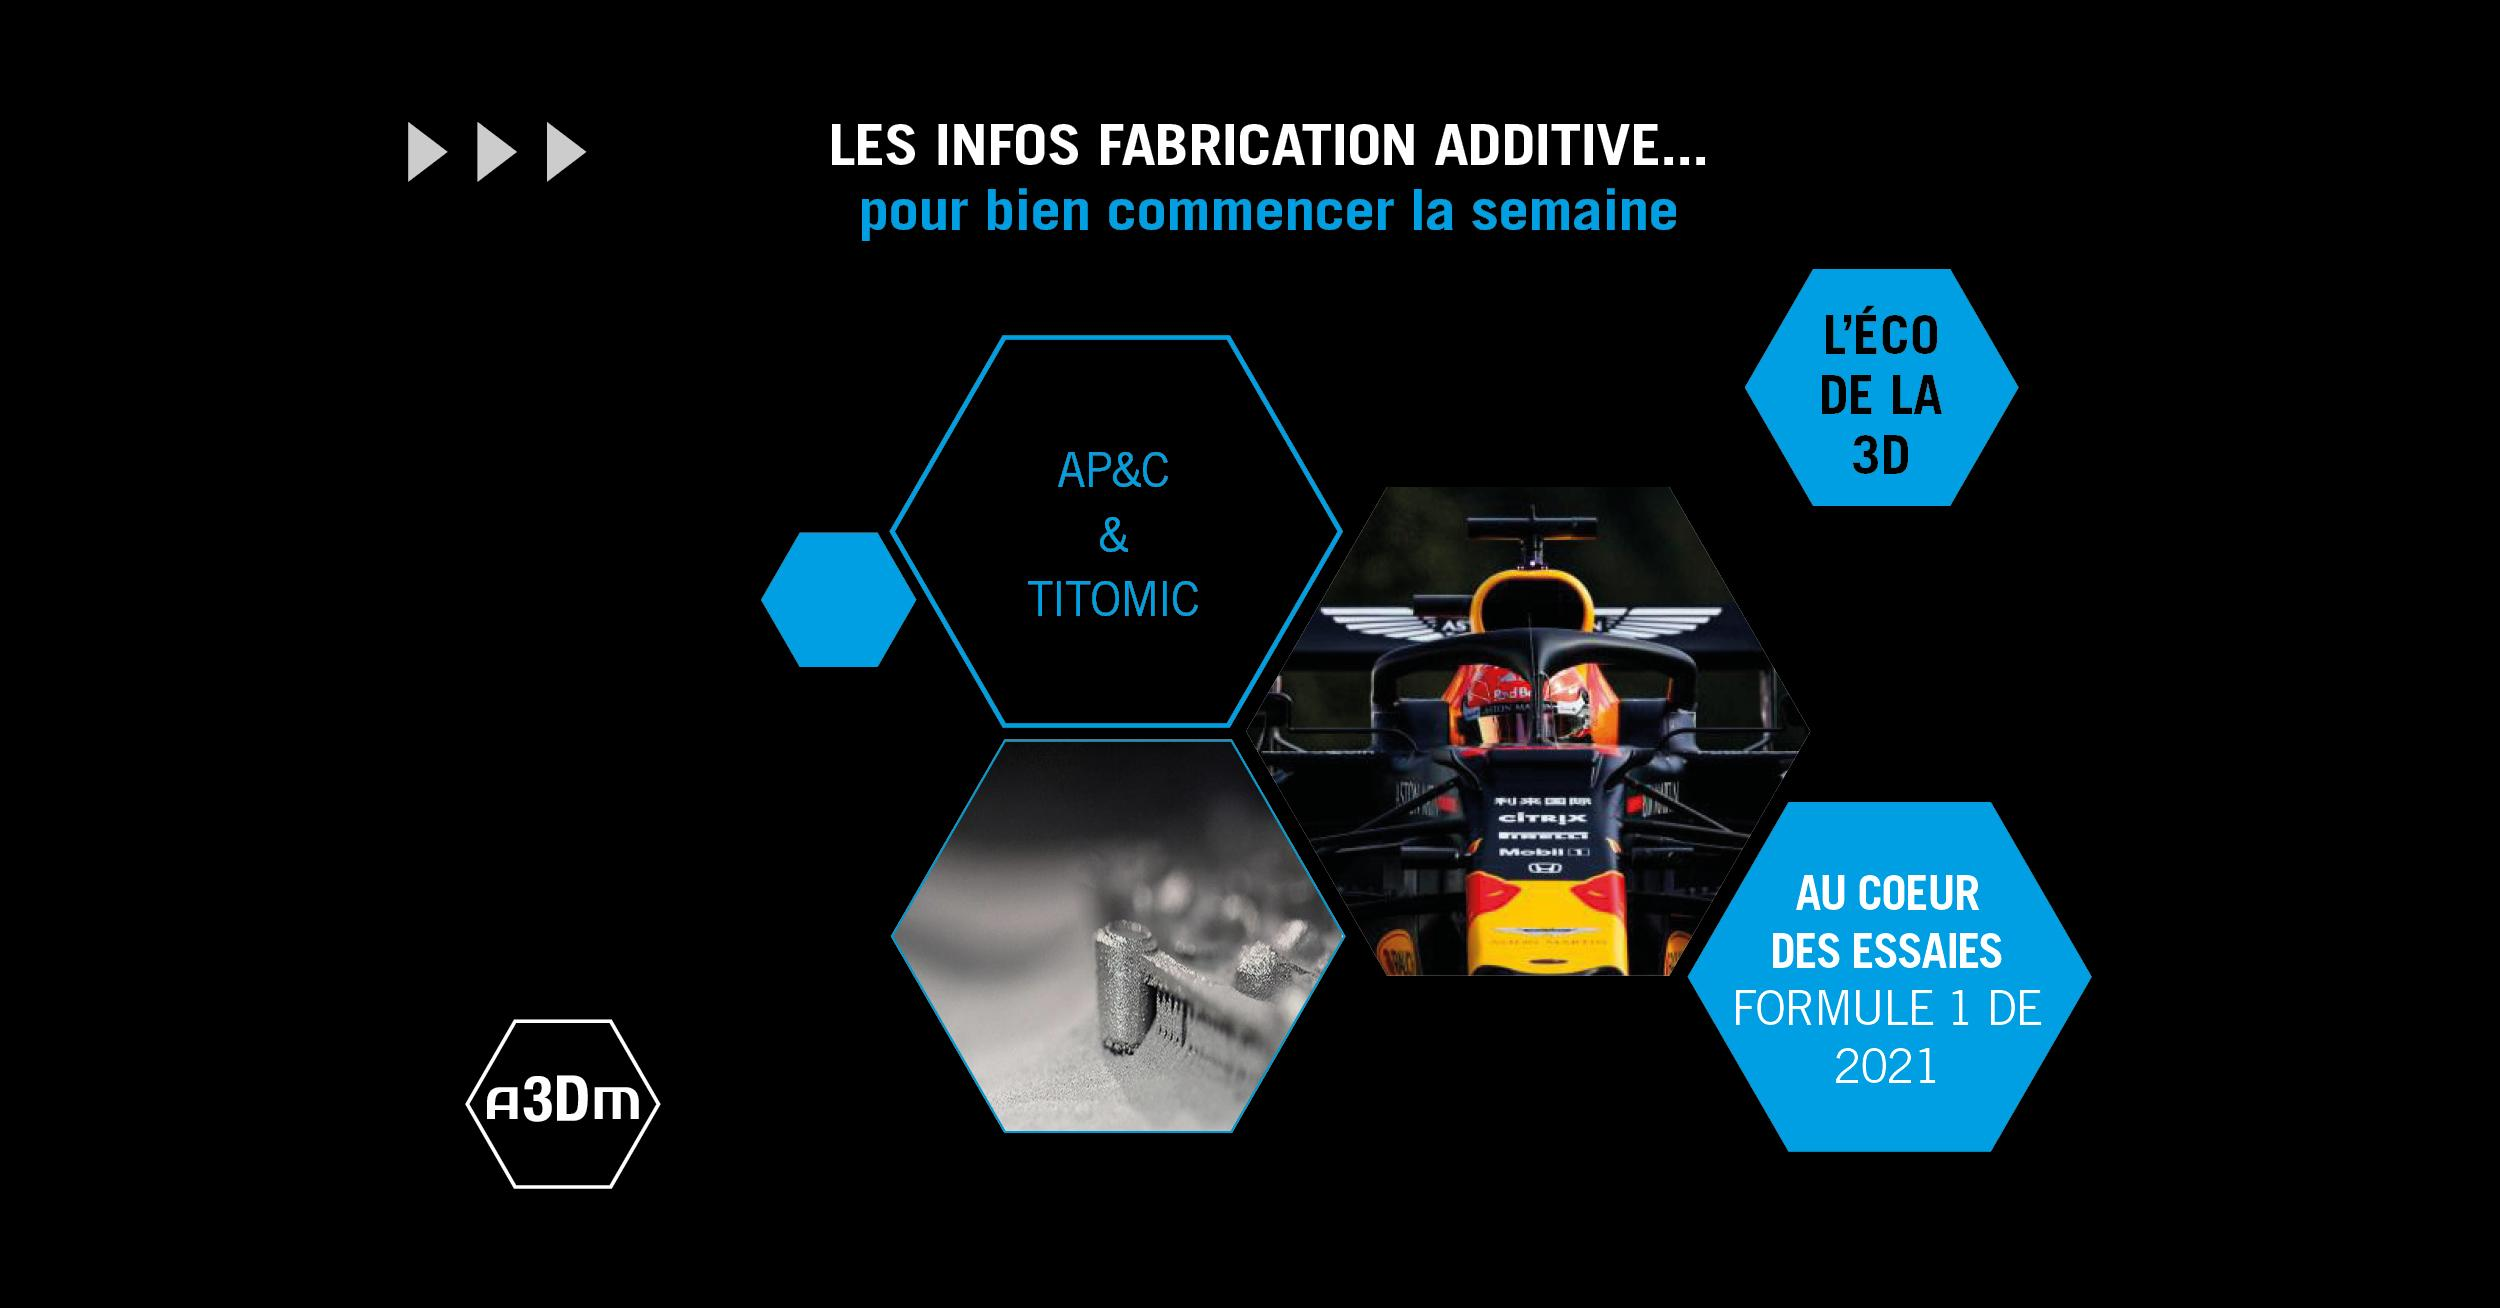 Les infos de la fabrication additive #17